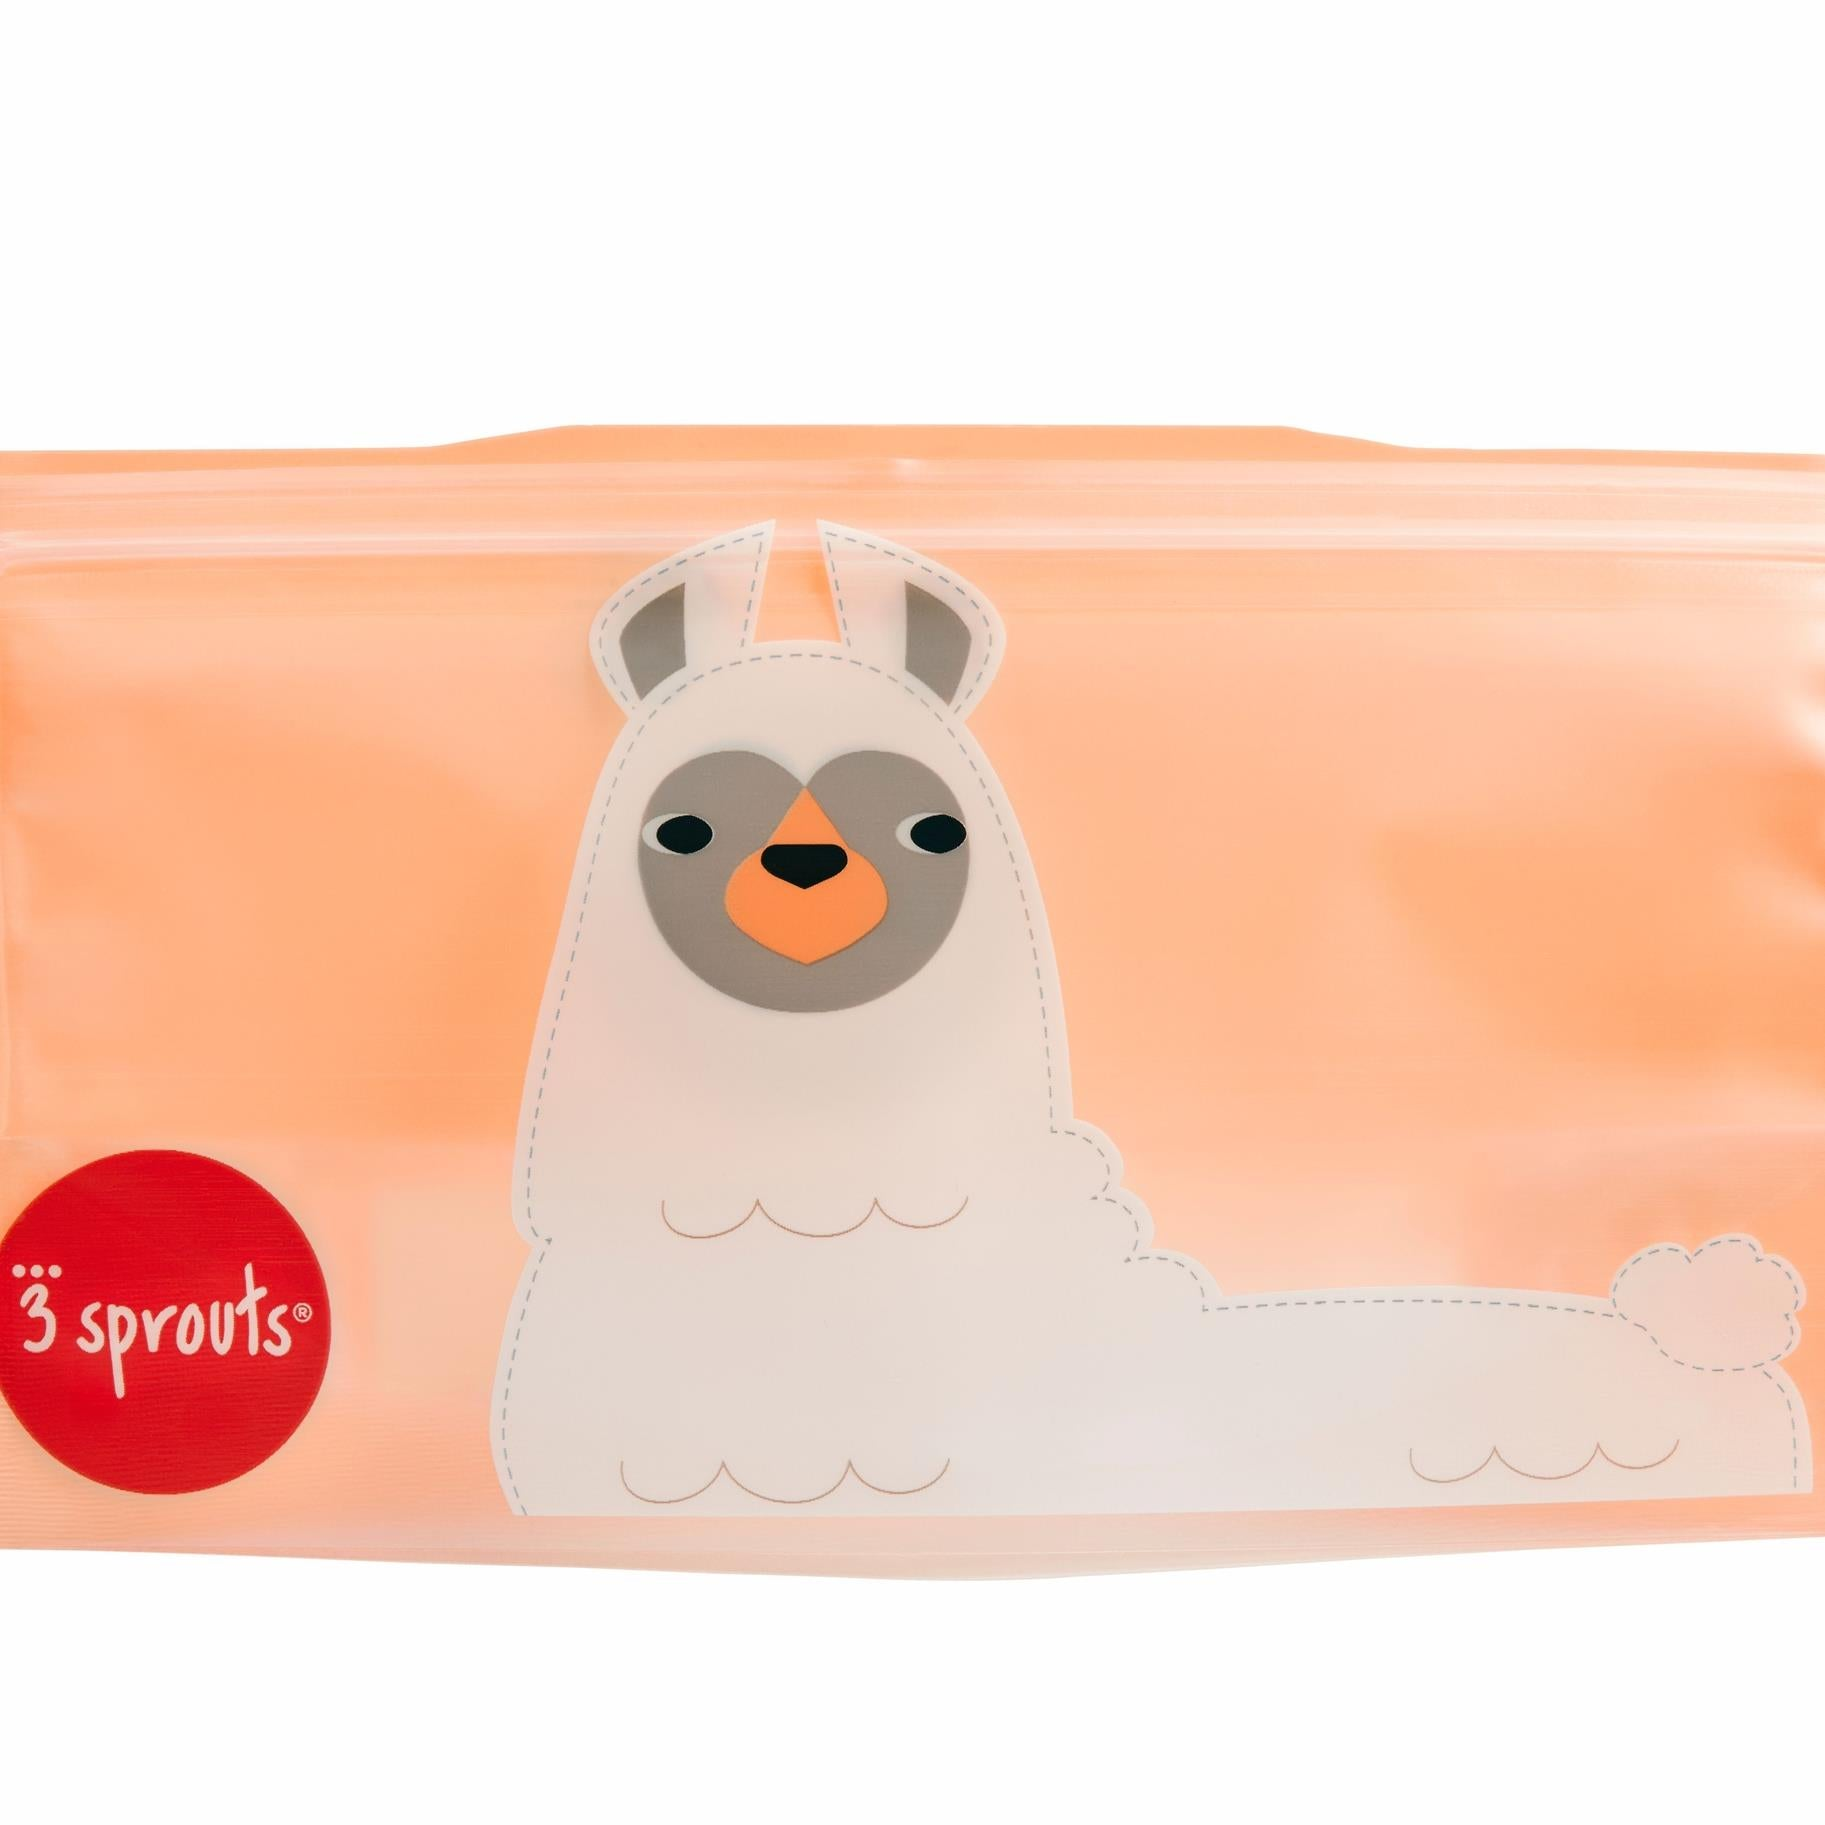 3 Sprouts Llama Snack Bags (2 Pack)